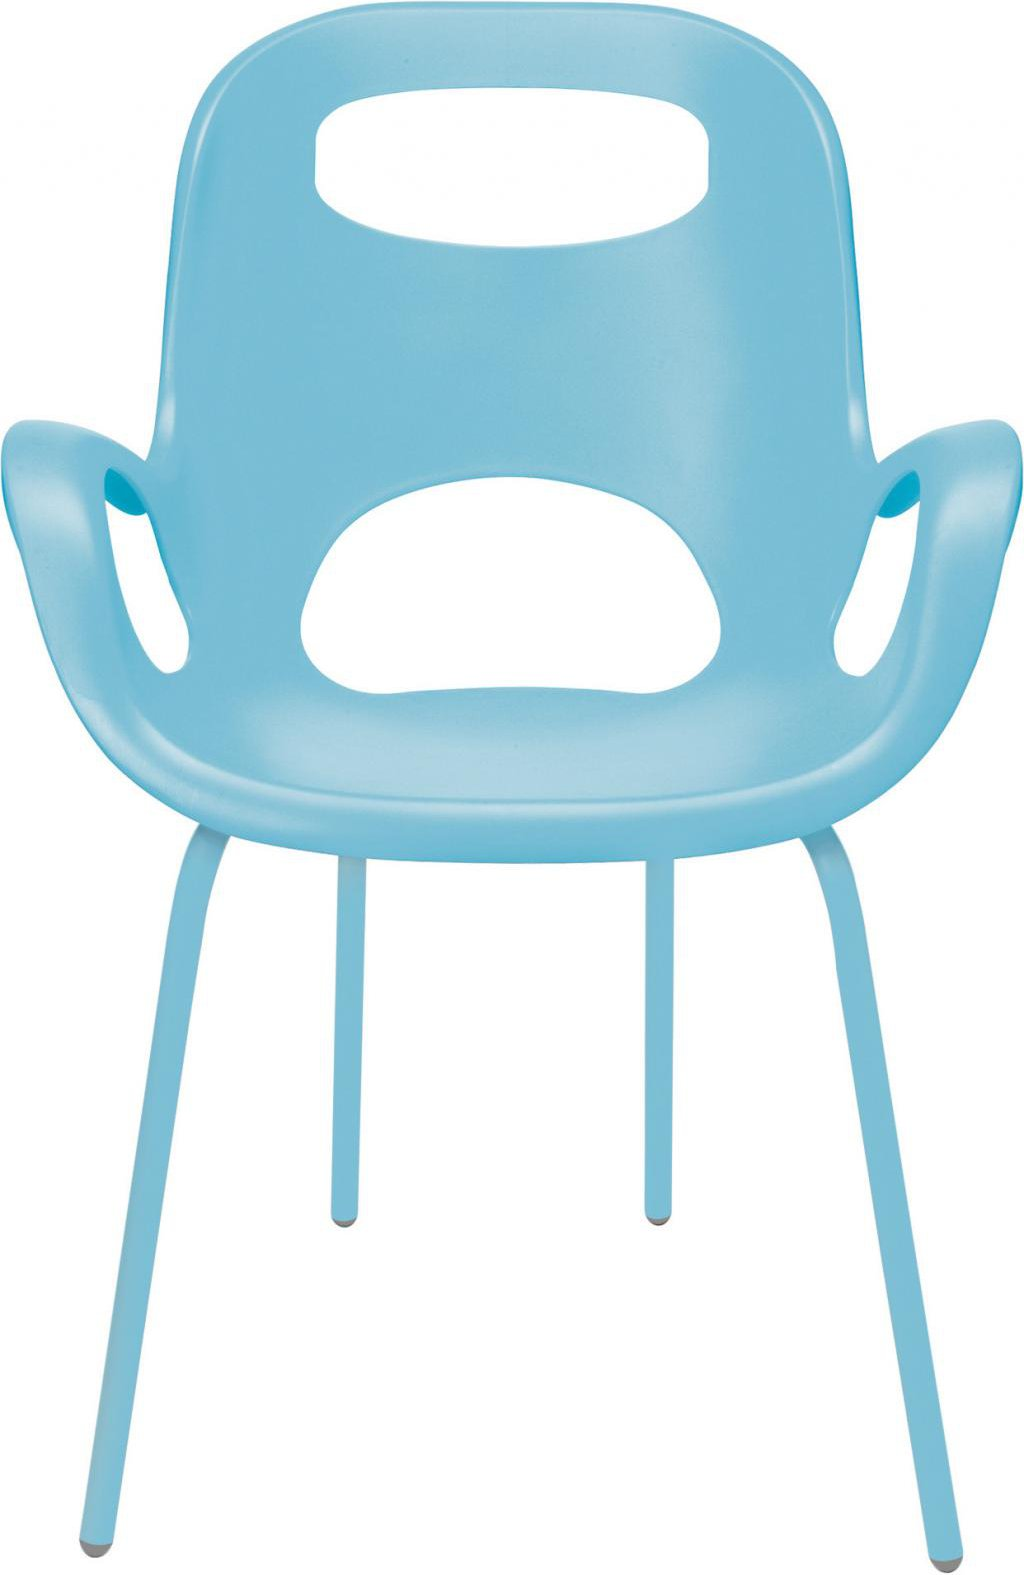 Umbra Oh Chair